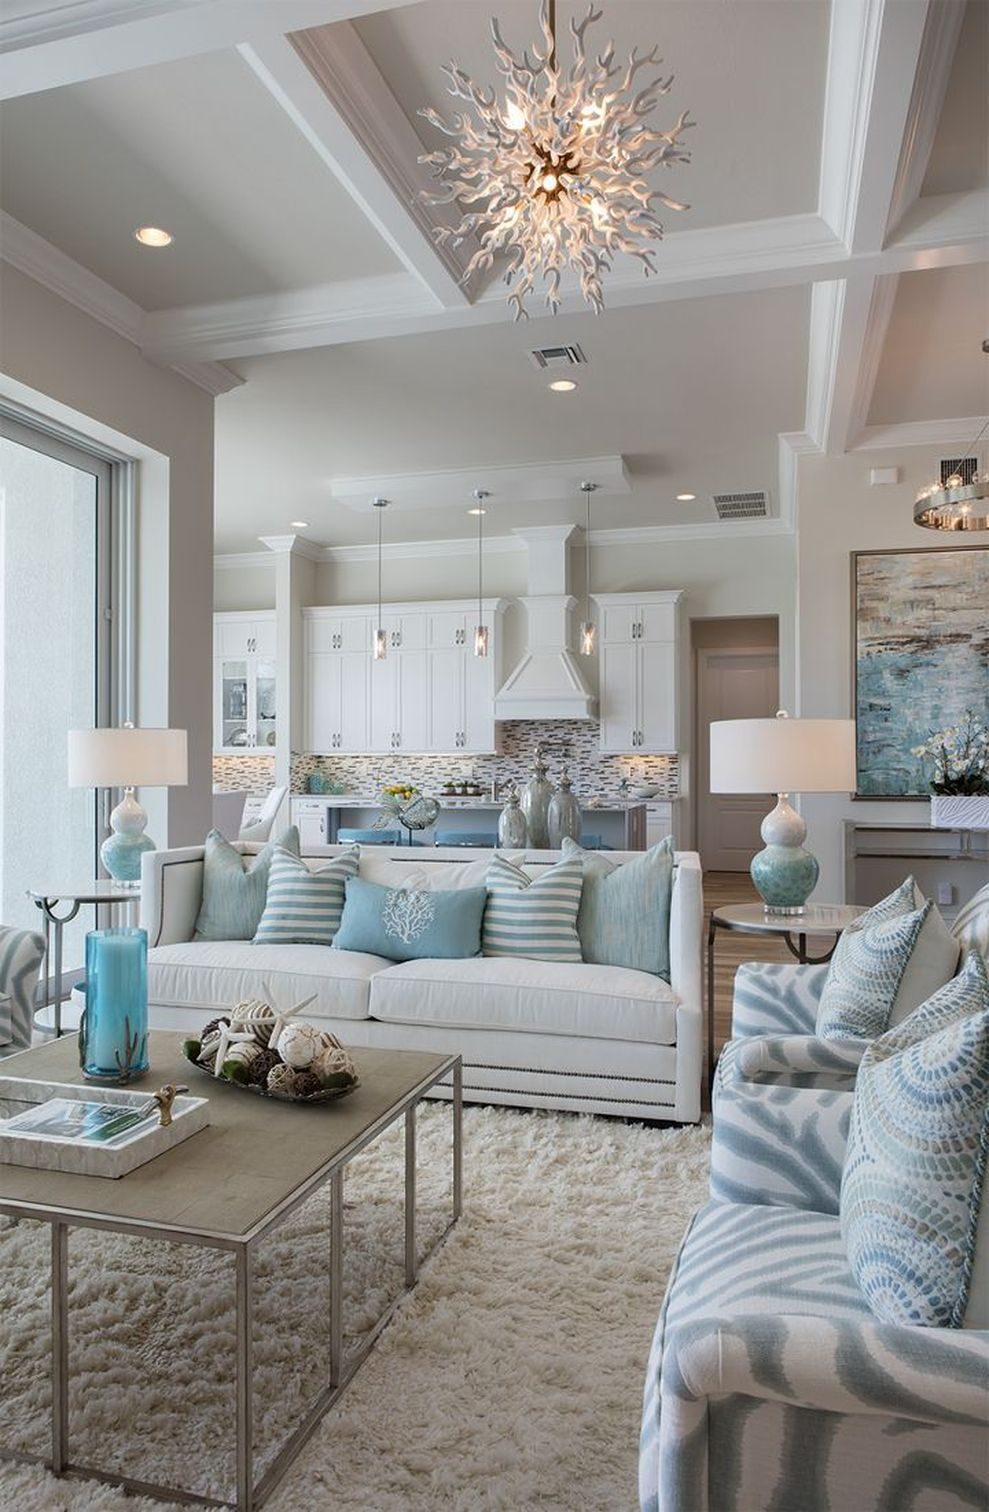 42 Incredible Teal And Silver Living Room Design Ideas Good